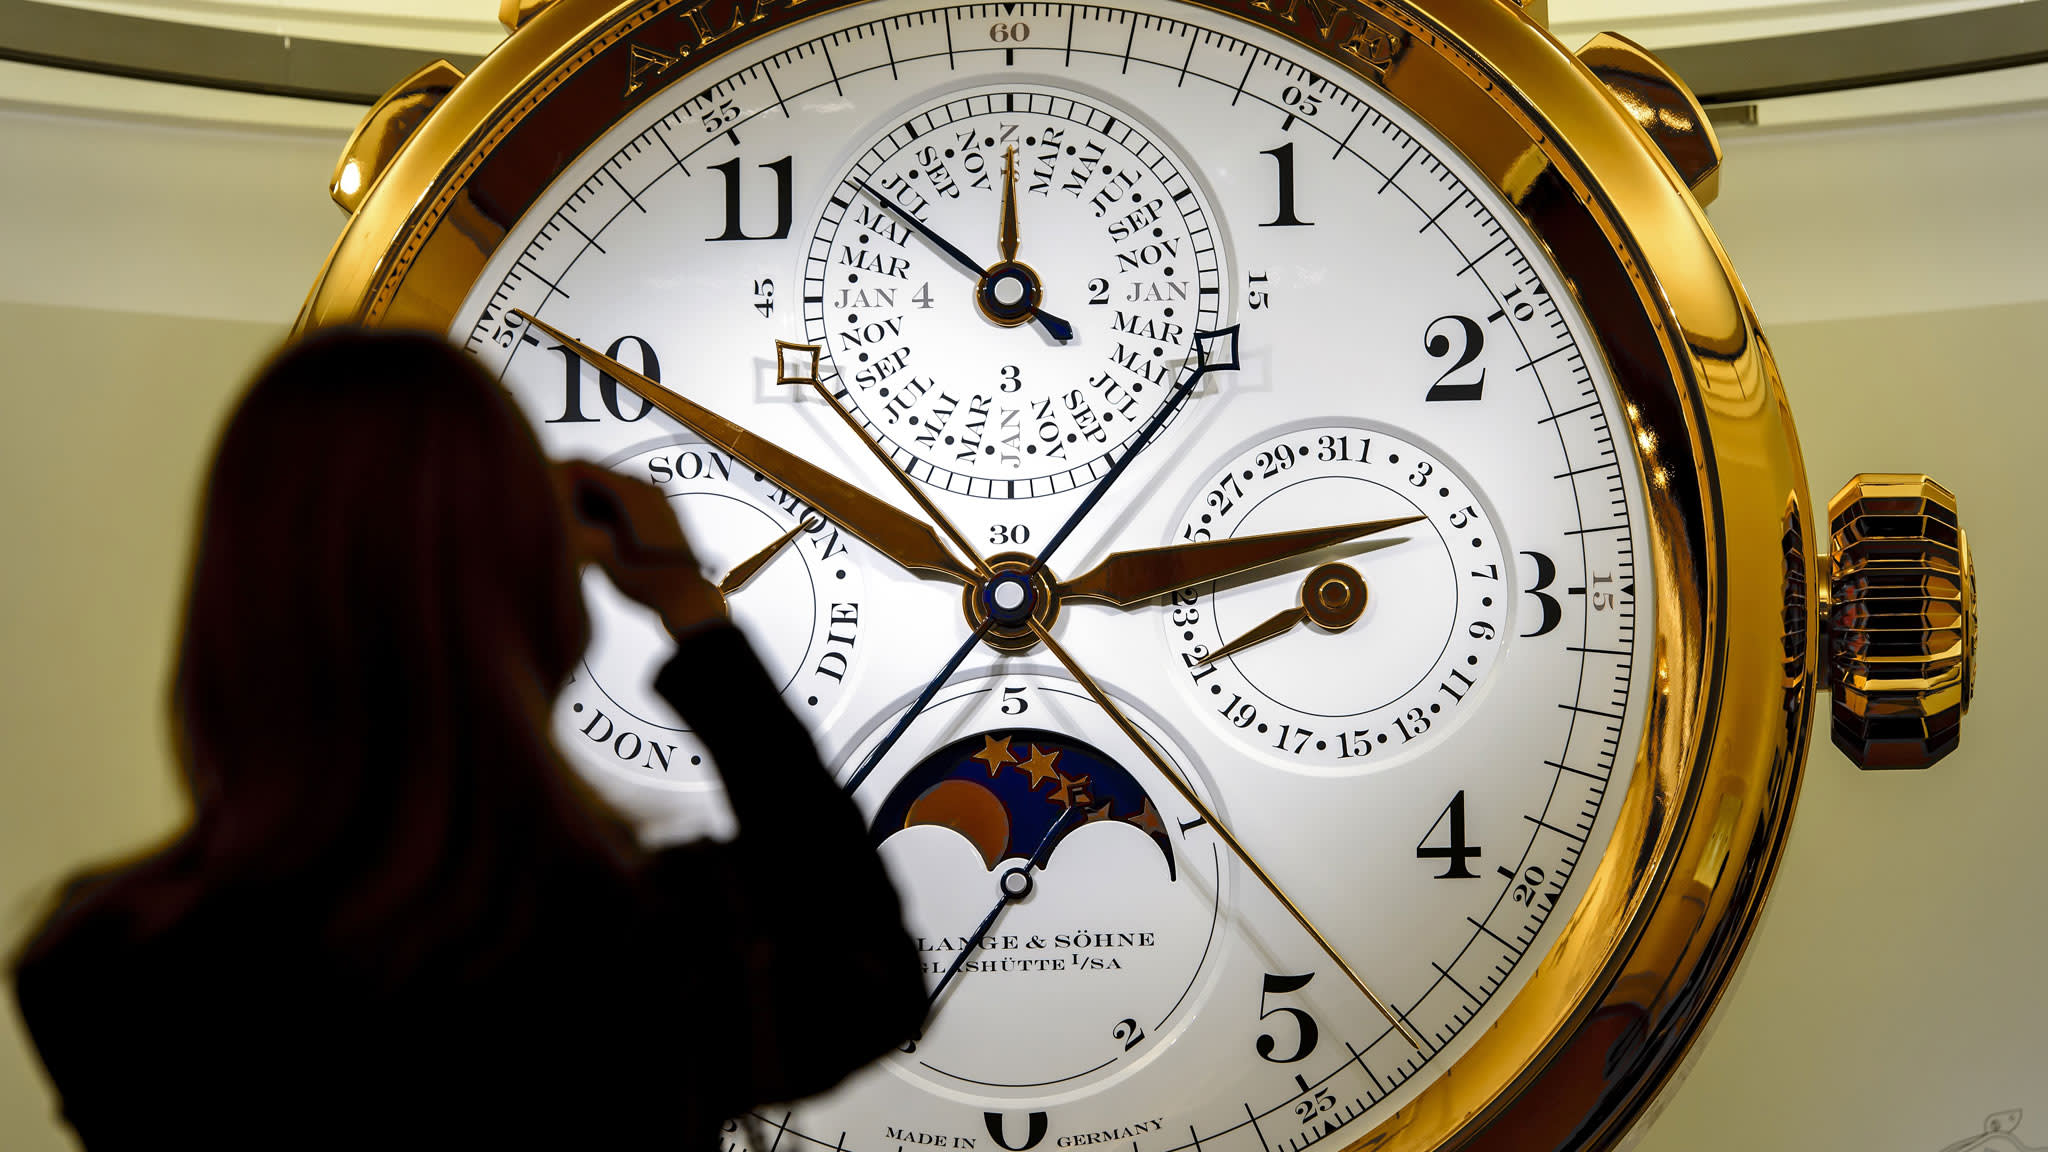 China calls time on expensive watches in face of crackdown   Financial Times